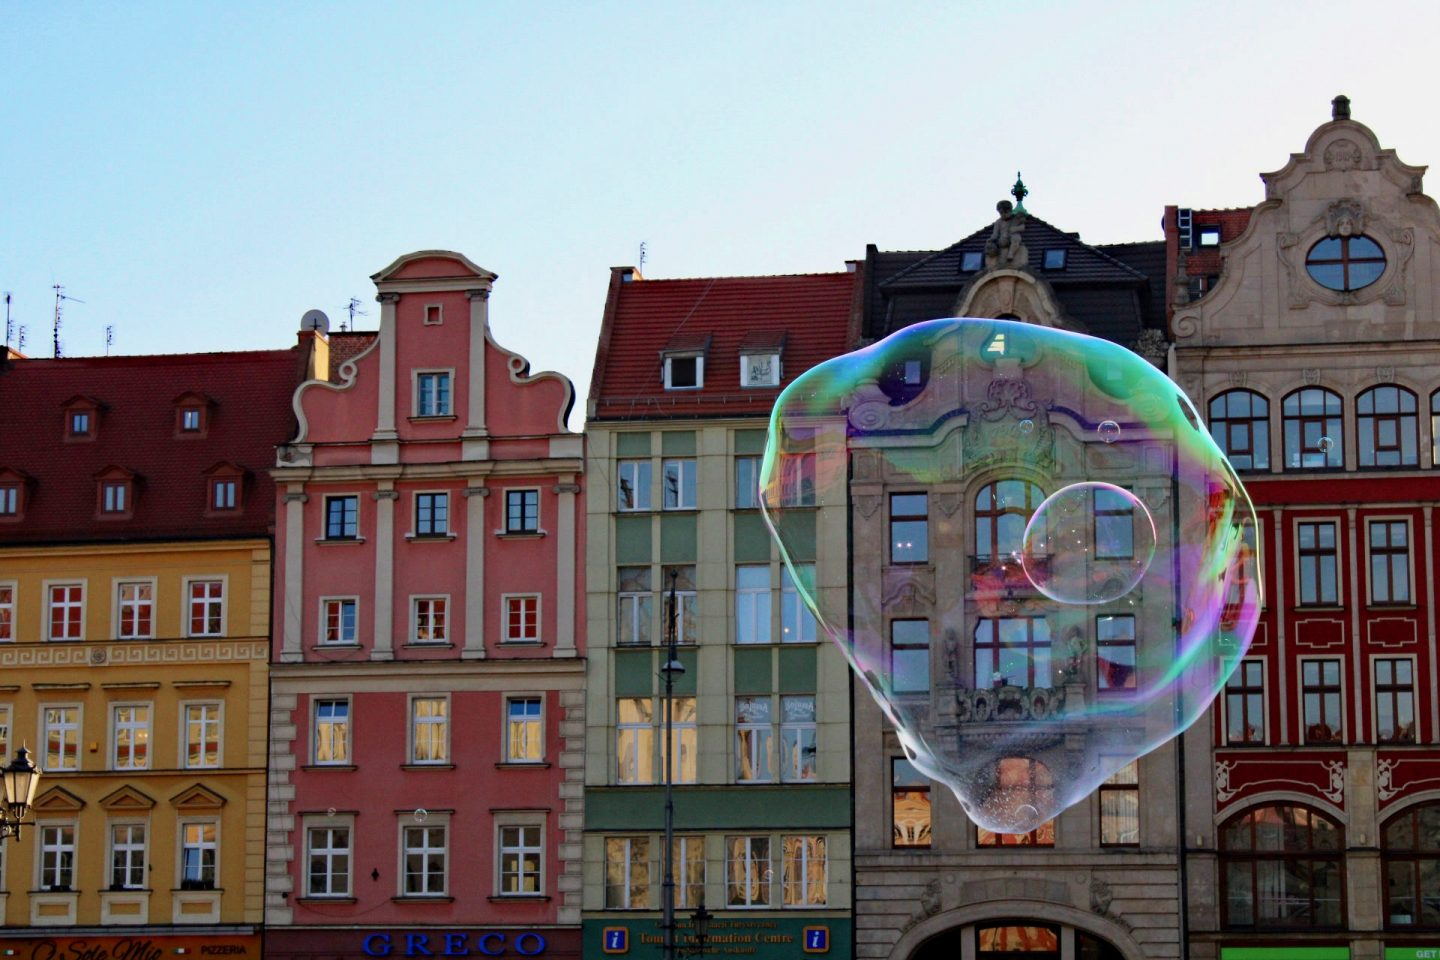 cheap european city break - a bubble floating in front of the colourful facades of Wroclaw in Poland